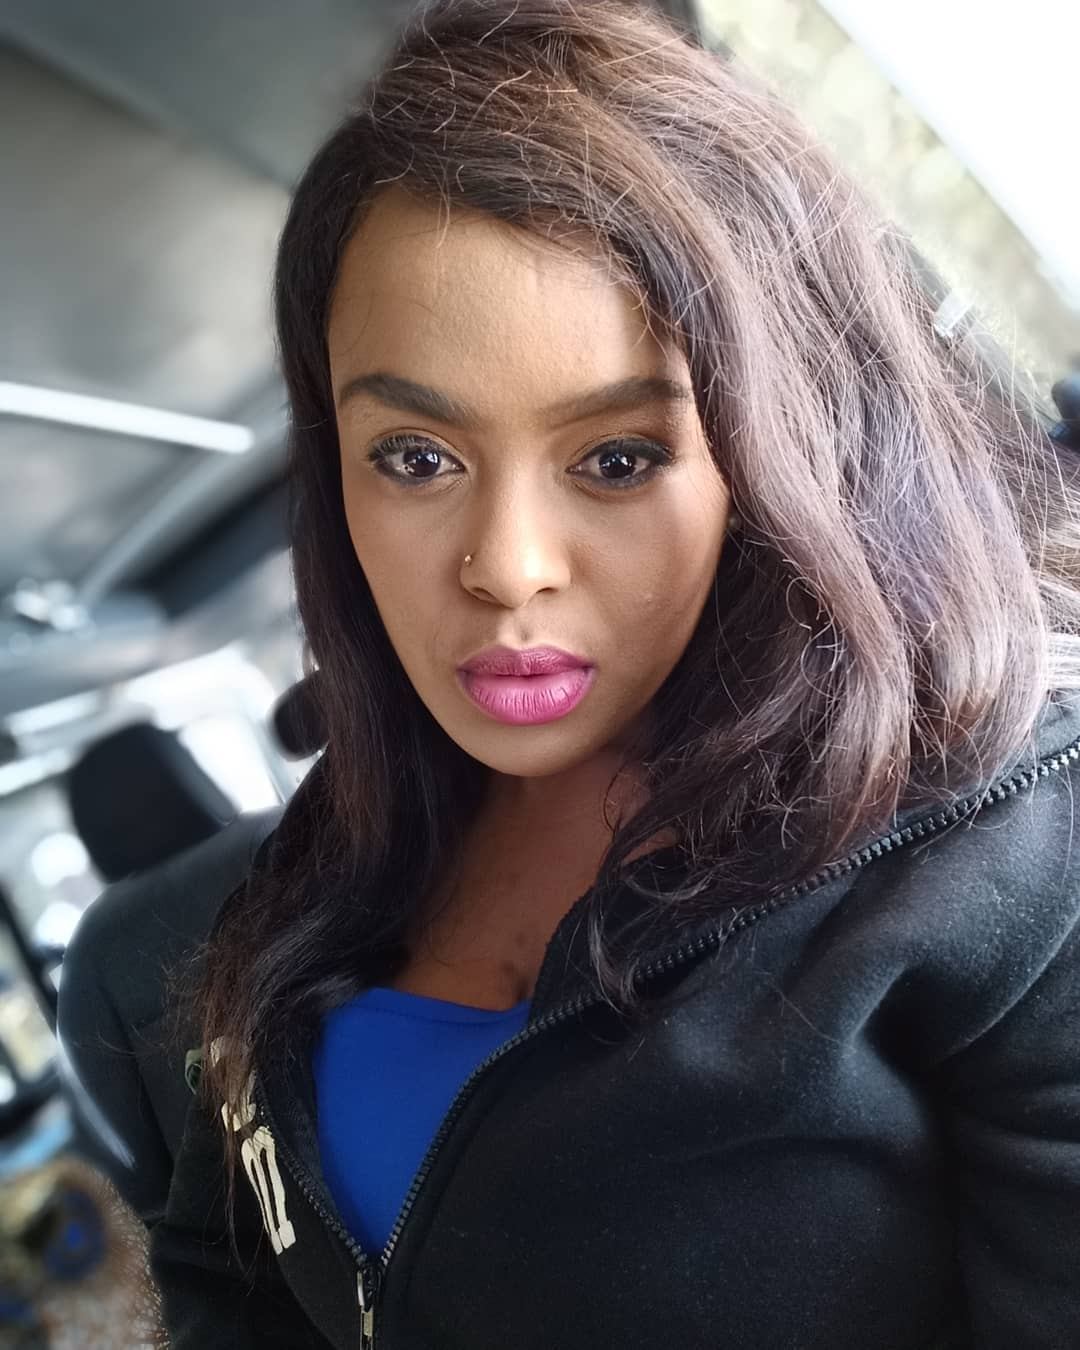 Avril Kenya - Wololo! Singer Avril trolled for makeup gone wrong (Photo)